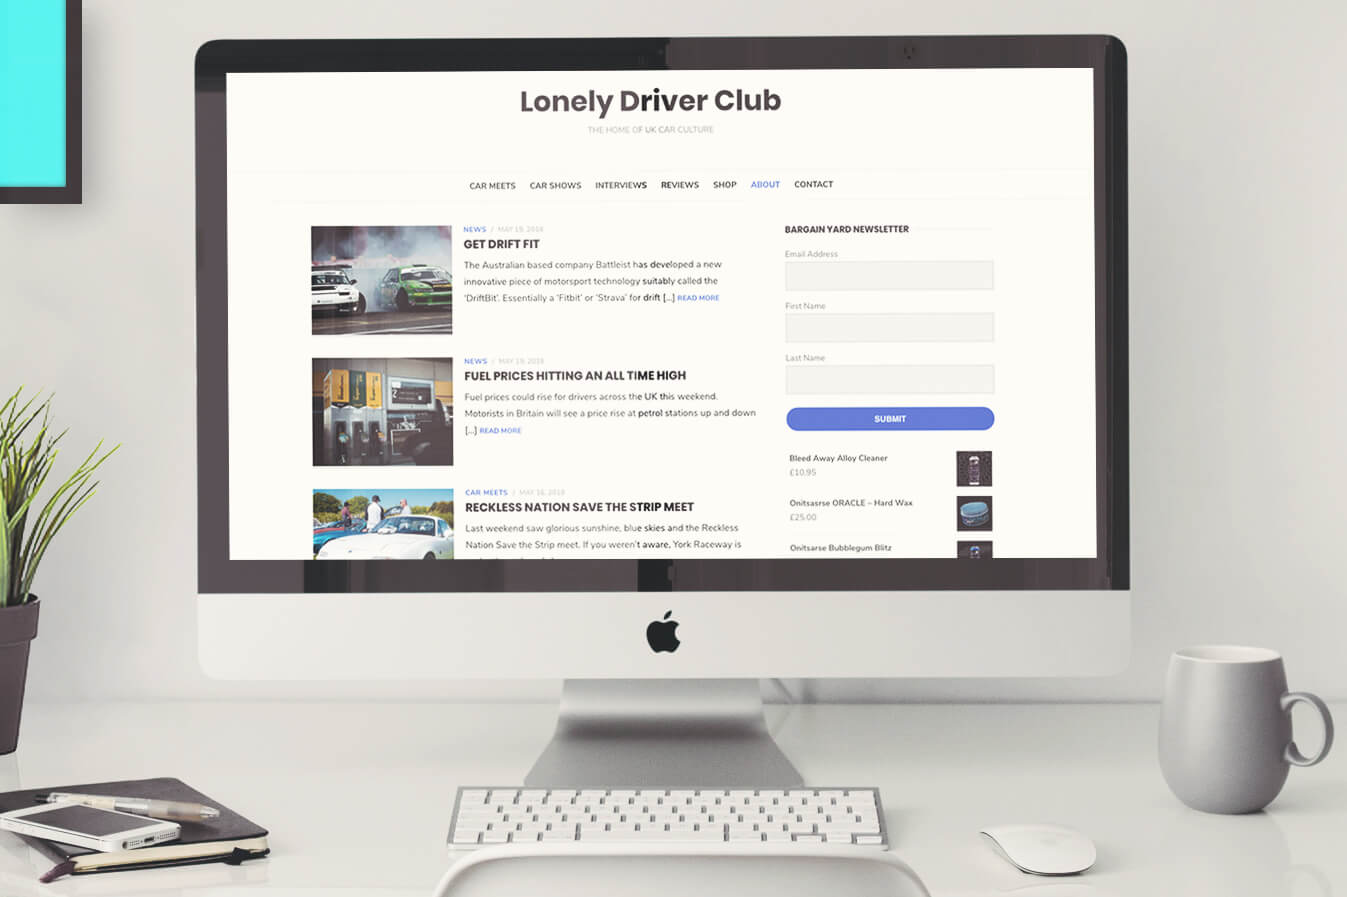 Lonely Driver Club Case Study Image